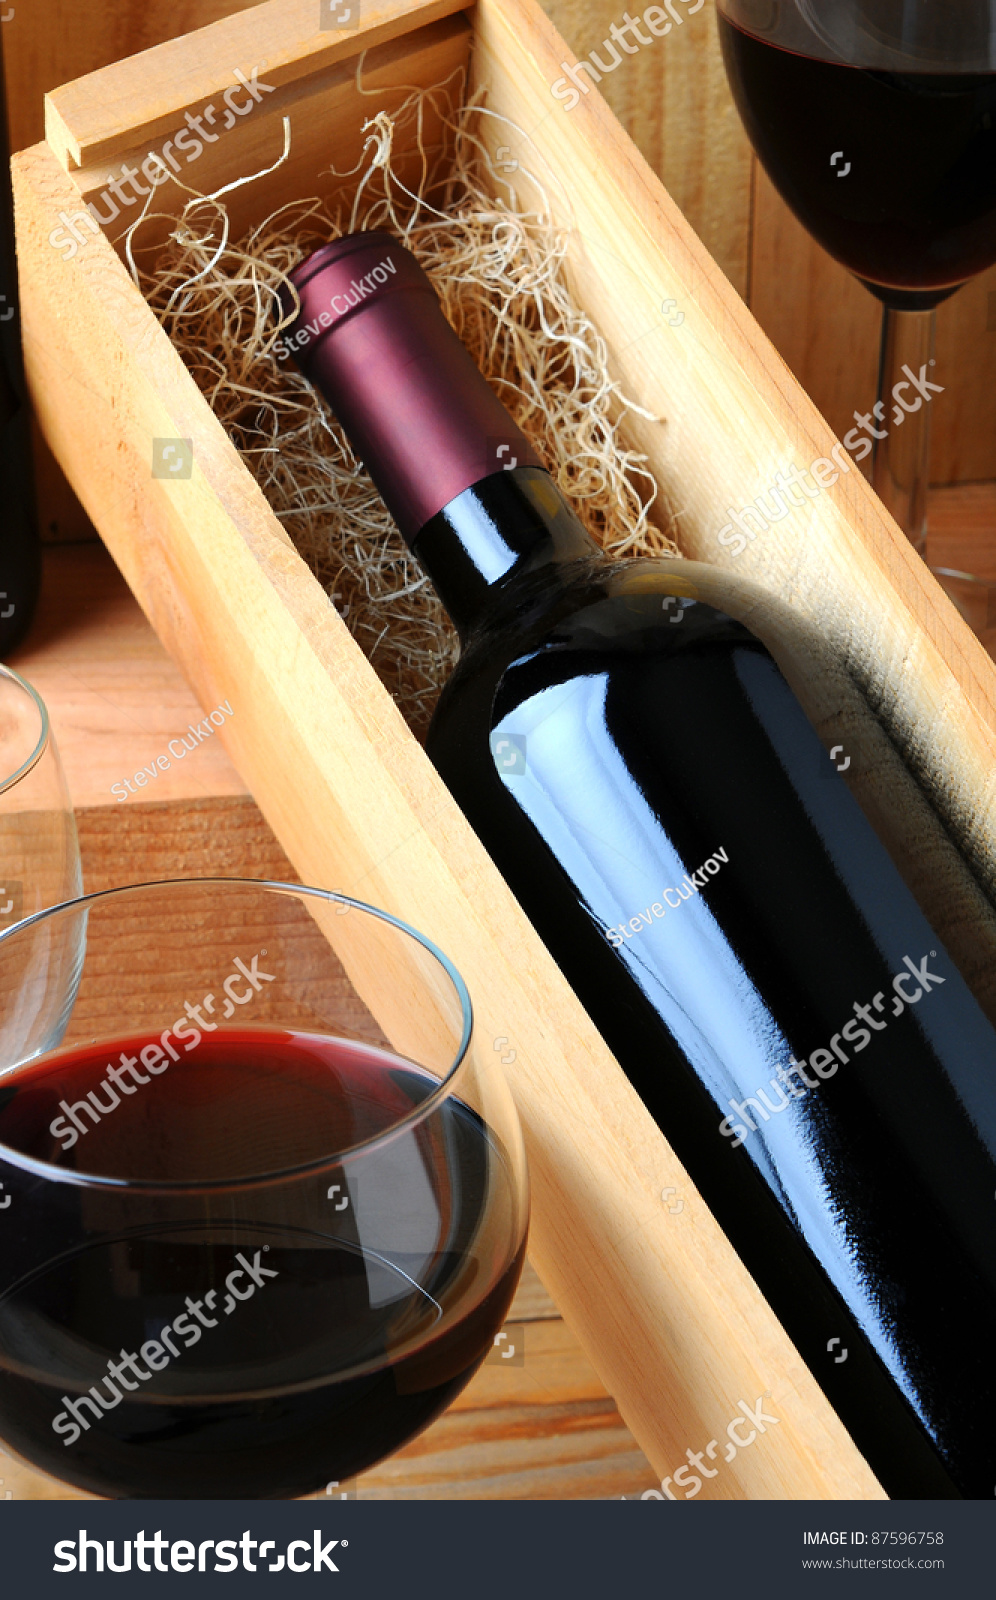 stock-photo-a-red-wine-bottle-in-a-woode